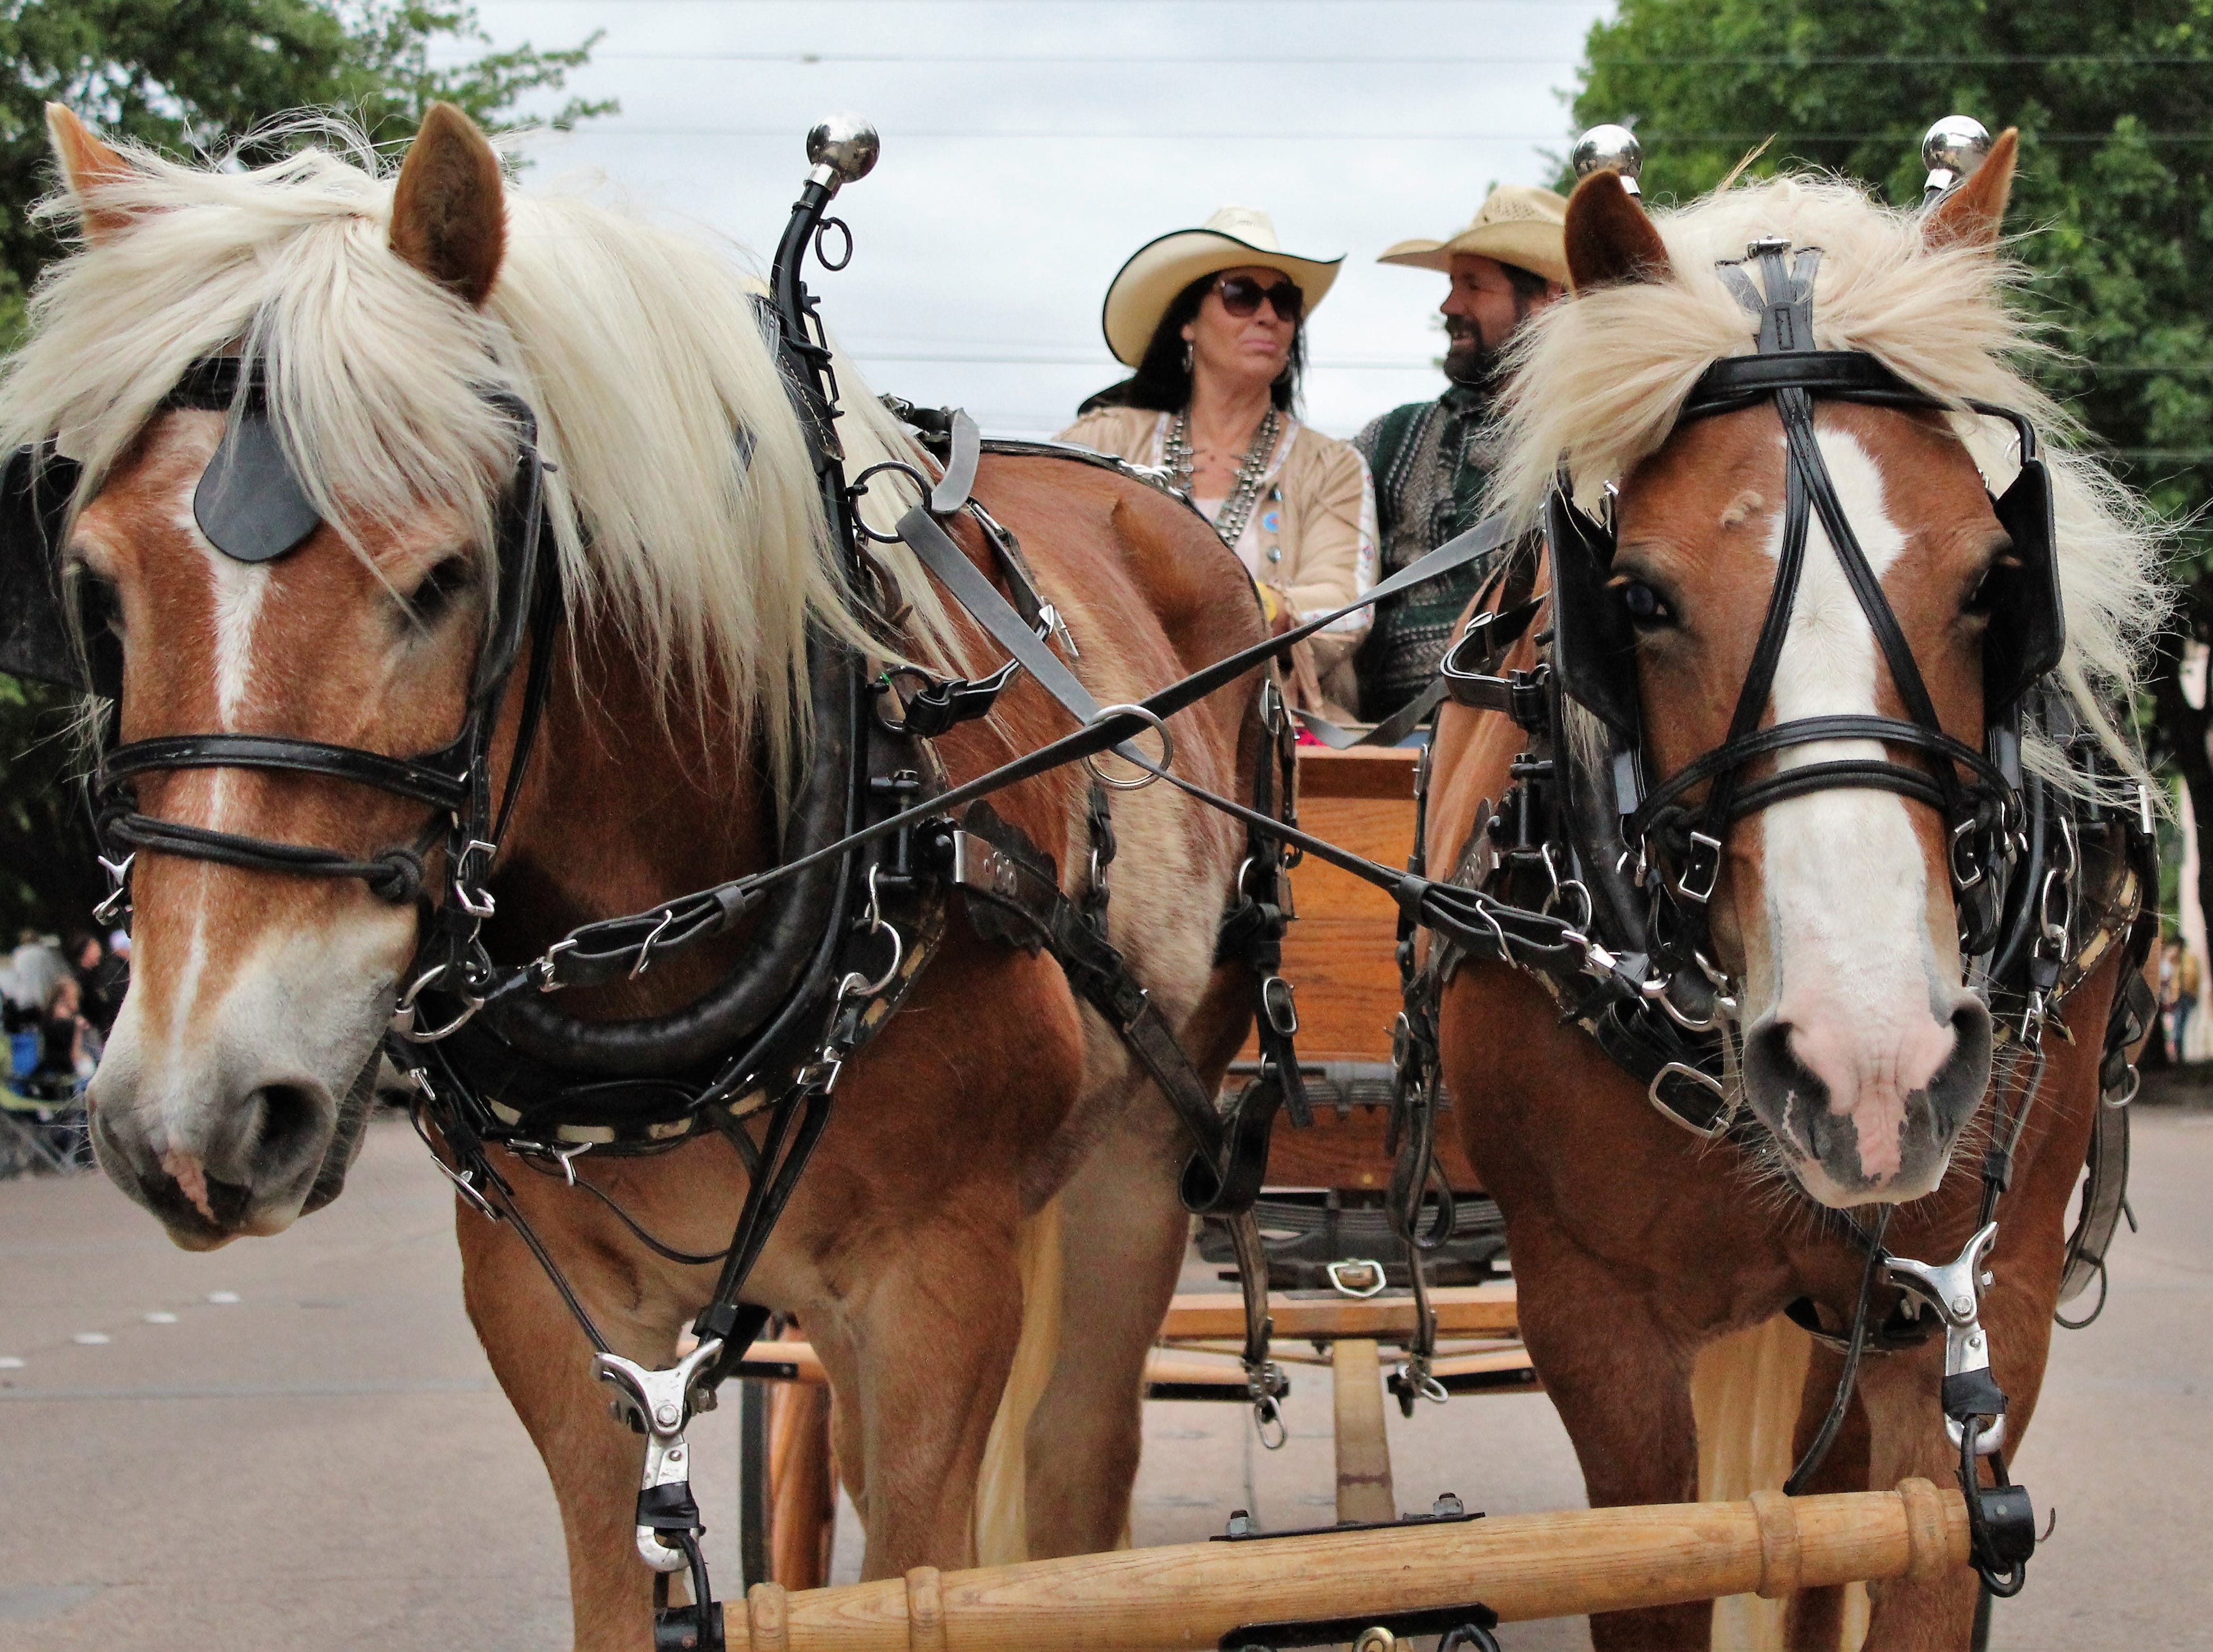 These horses have the best hair, seen during Thursday evening's Western Heritage Classic parade through downtown Abilene. May 9, 2019.